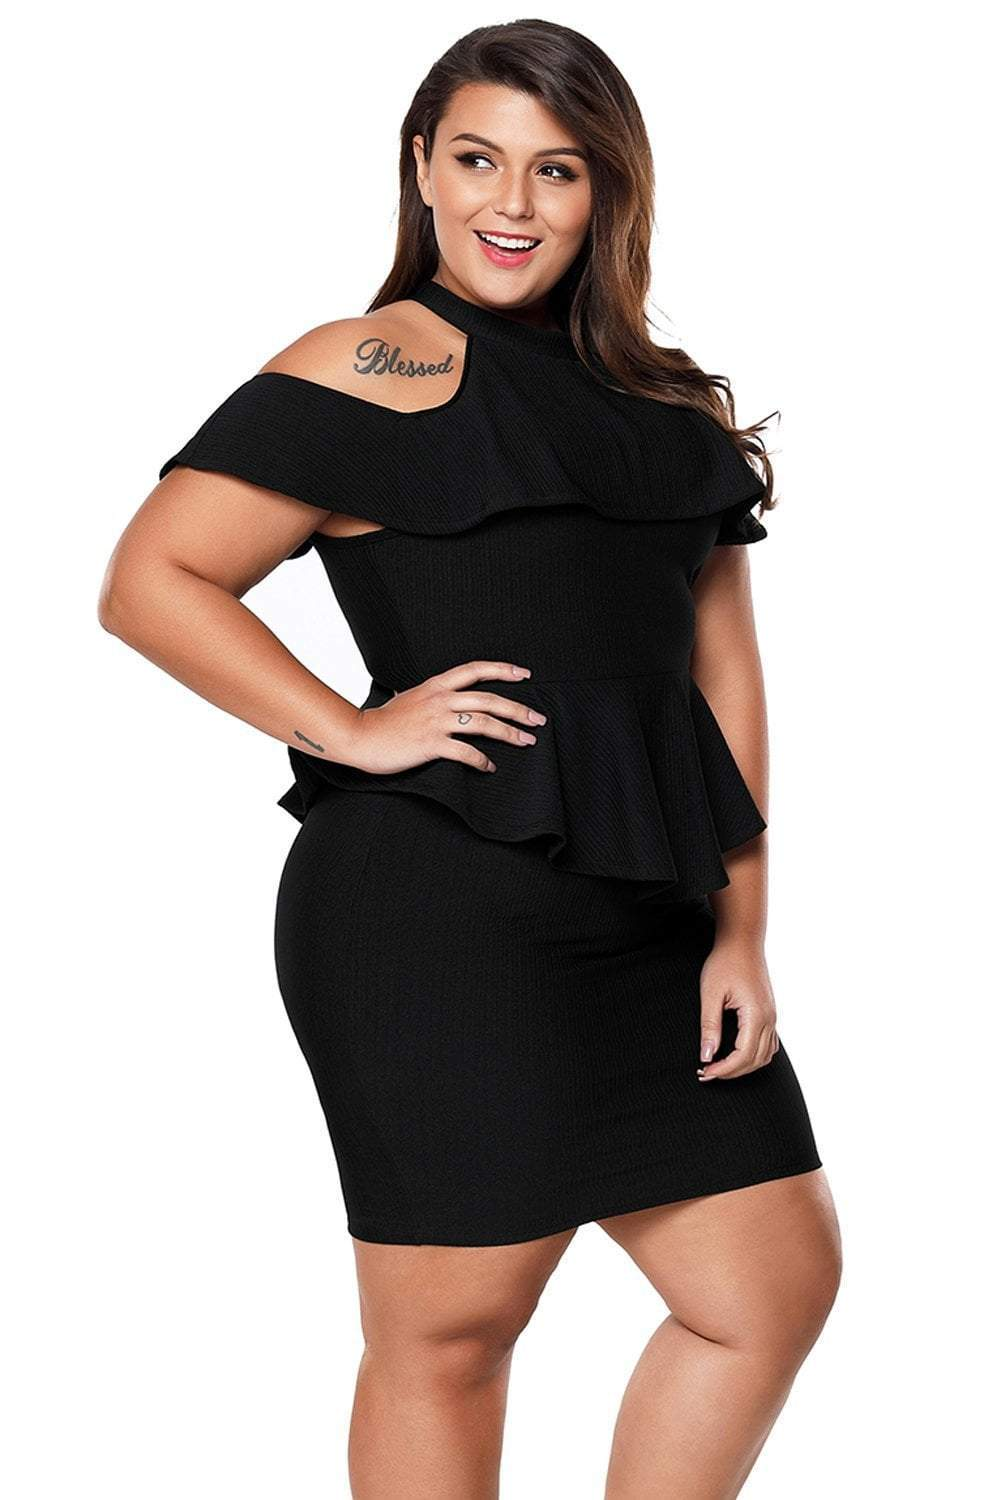 plus size Bodycon Dress XL / AUS 14 - 16 / Black zzz. Alison Peplum Dress - Black